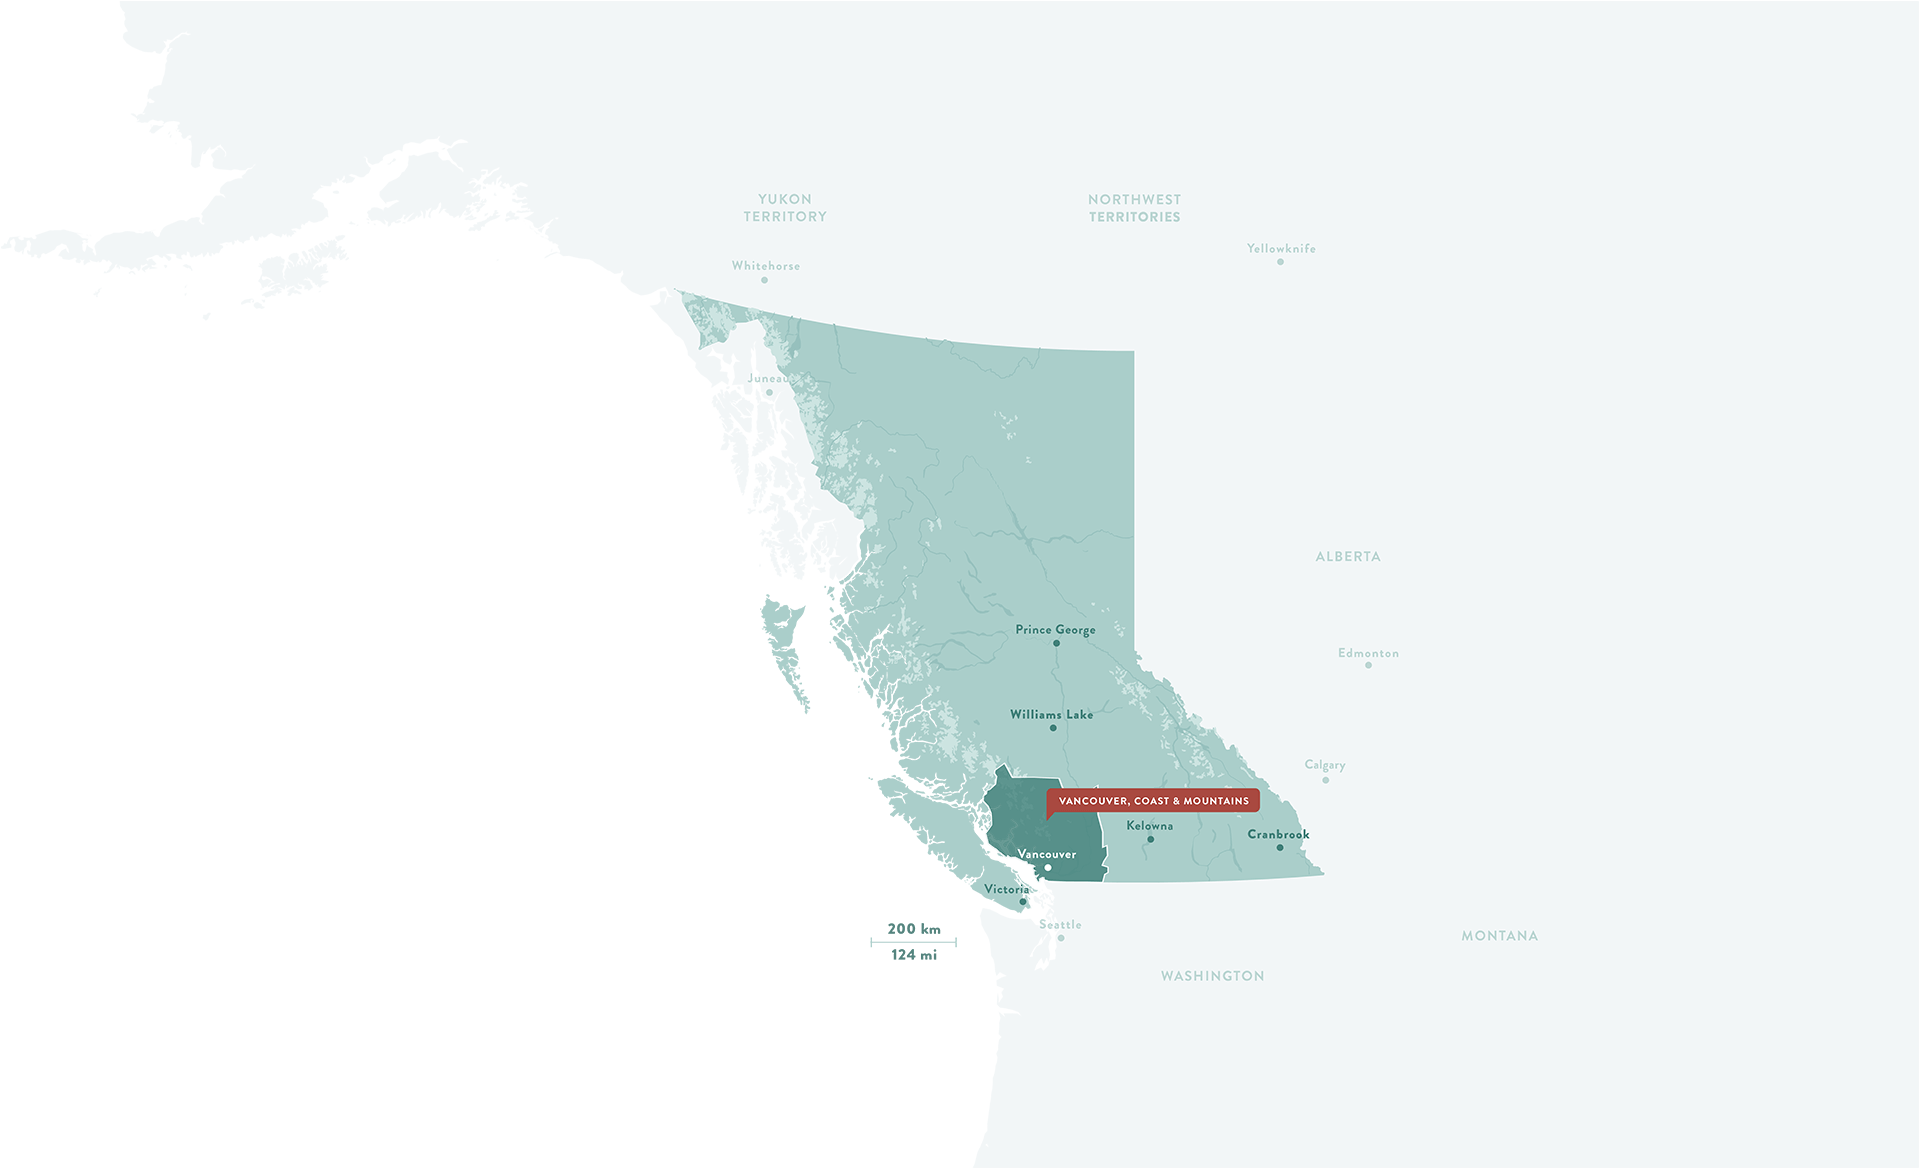 A map of British Columbia with Vancouver, Coast, and Mountains highlighted.